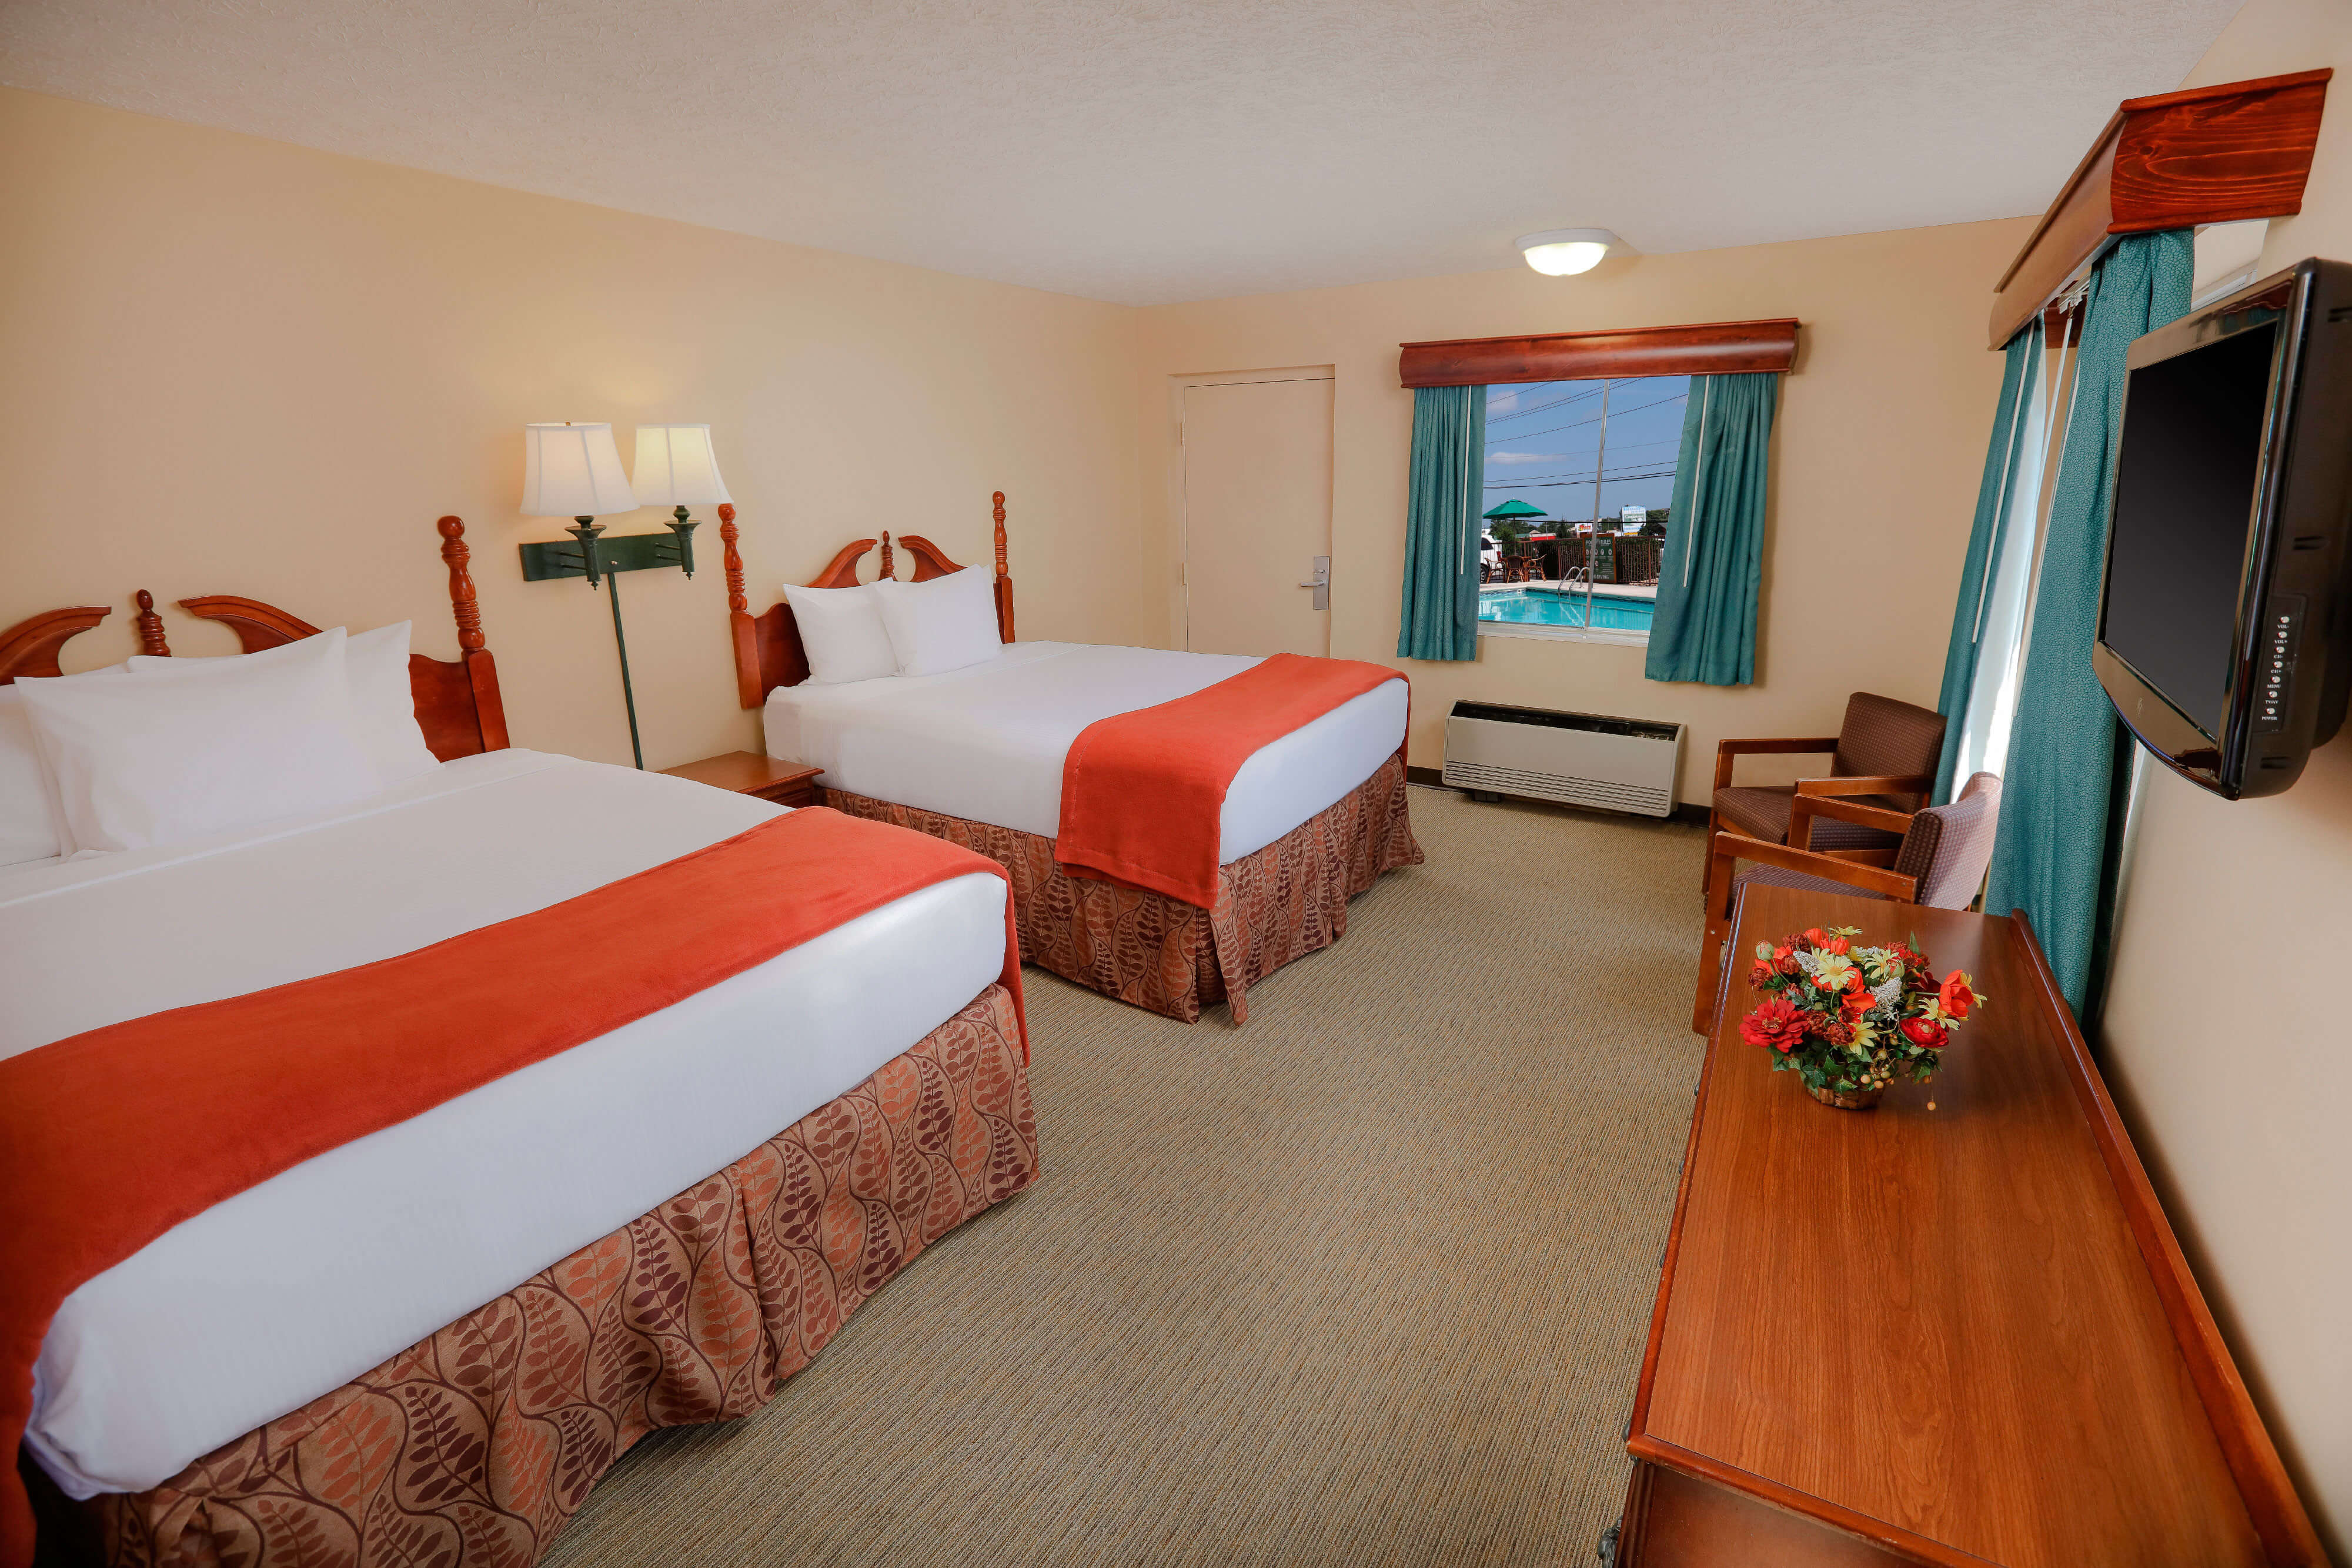 Double Queen Poolside Guestroom at one of our Pigeon Forge Resorts   Wild Bear Inn   Westgate Resorts in the Smoky Mountains